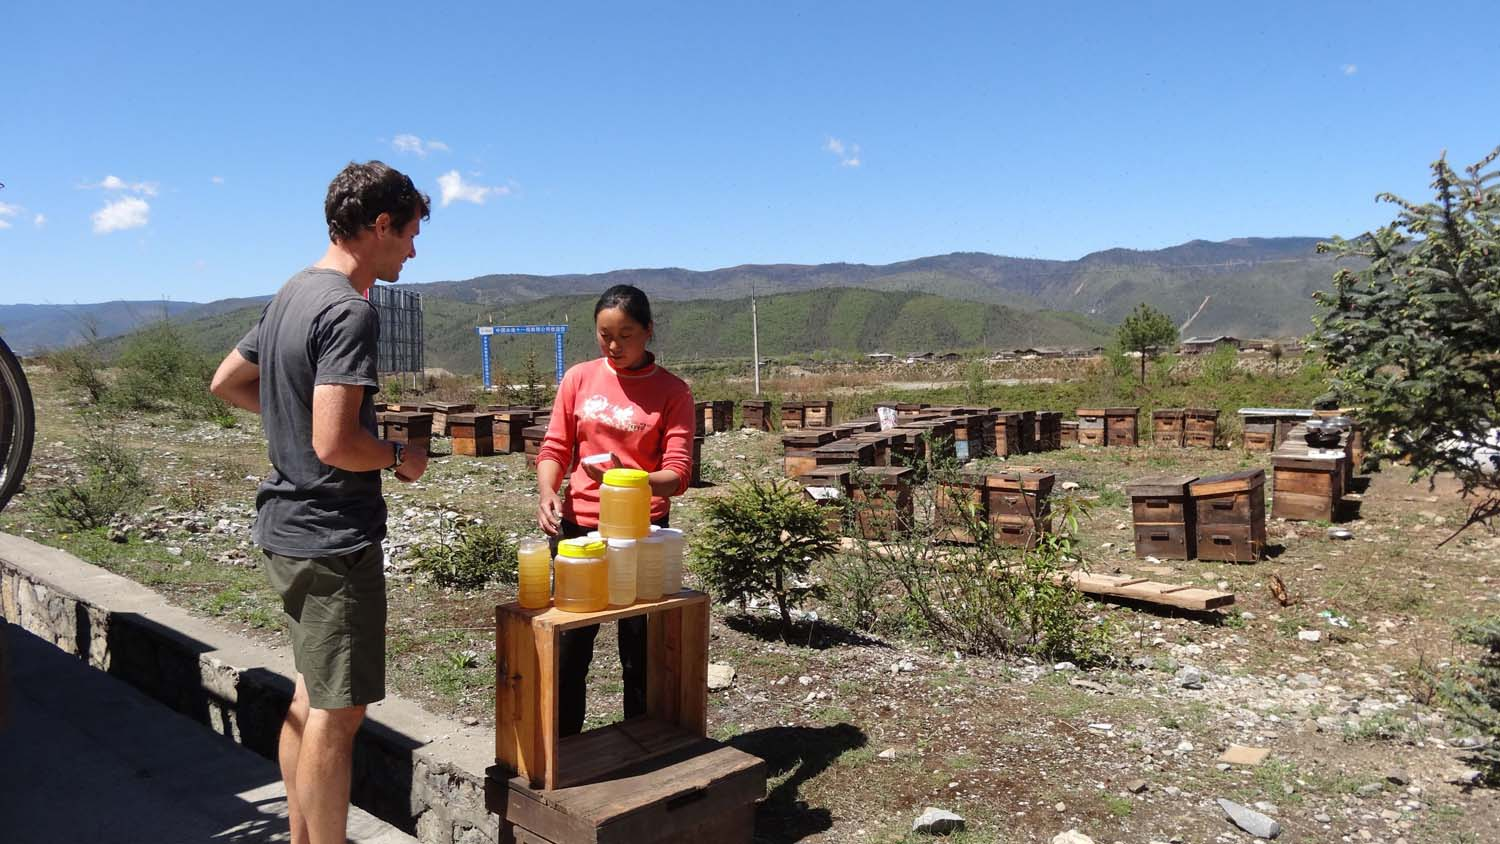 buying honey directly from the beekeepers alongside the road